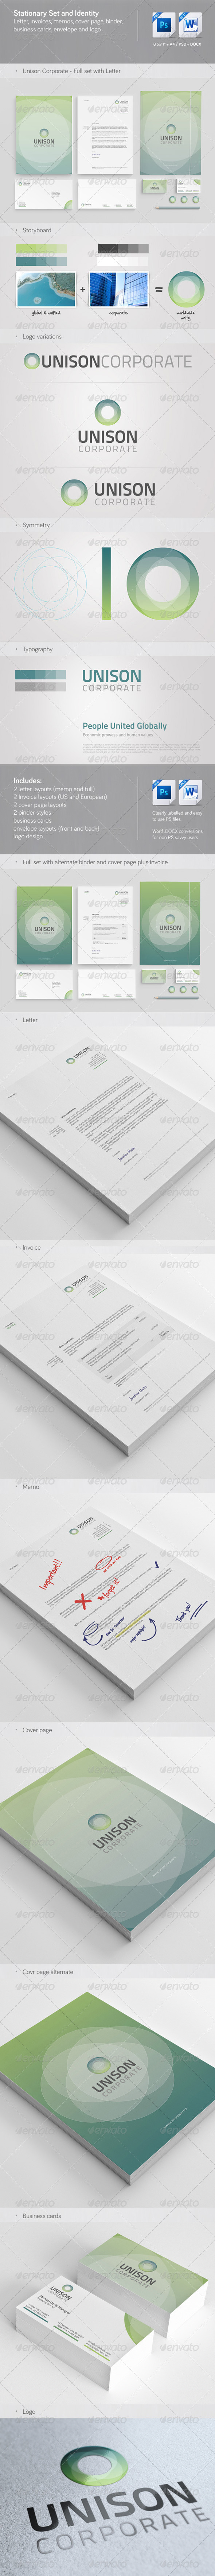 Unison: Corporate Stationery, Invoice and Identity - Stationery Print Templates